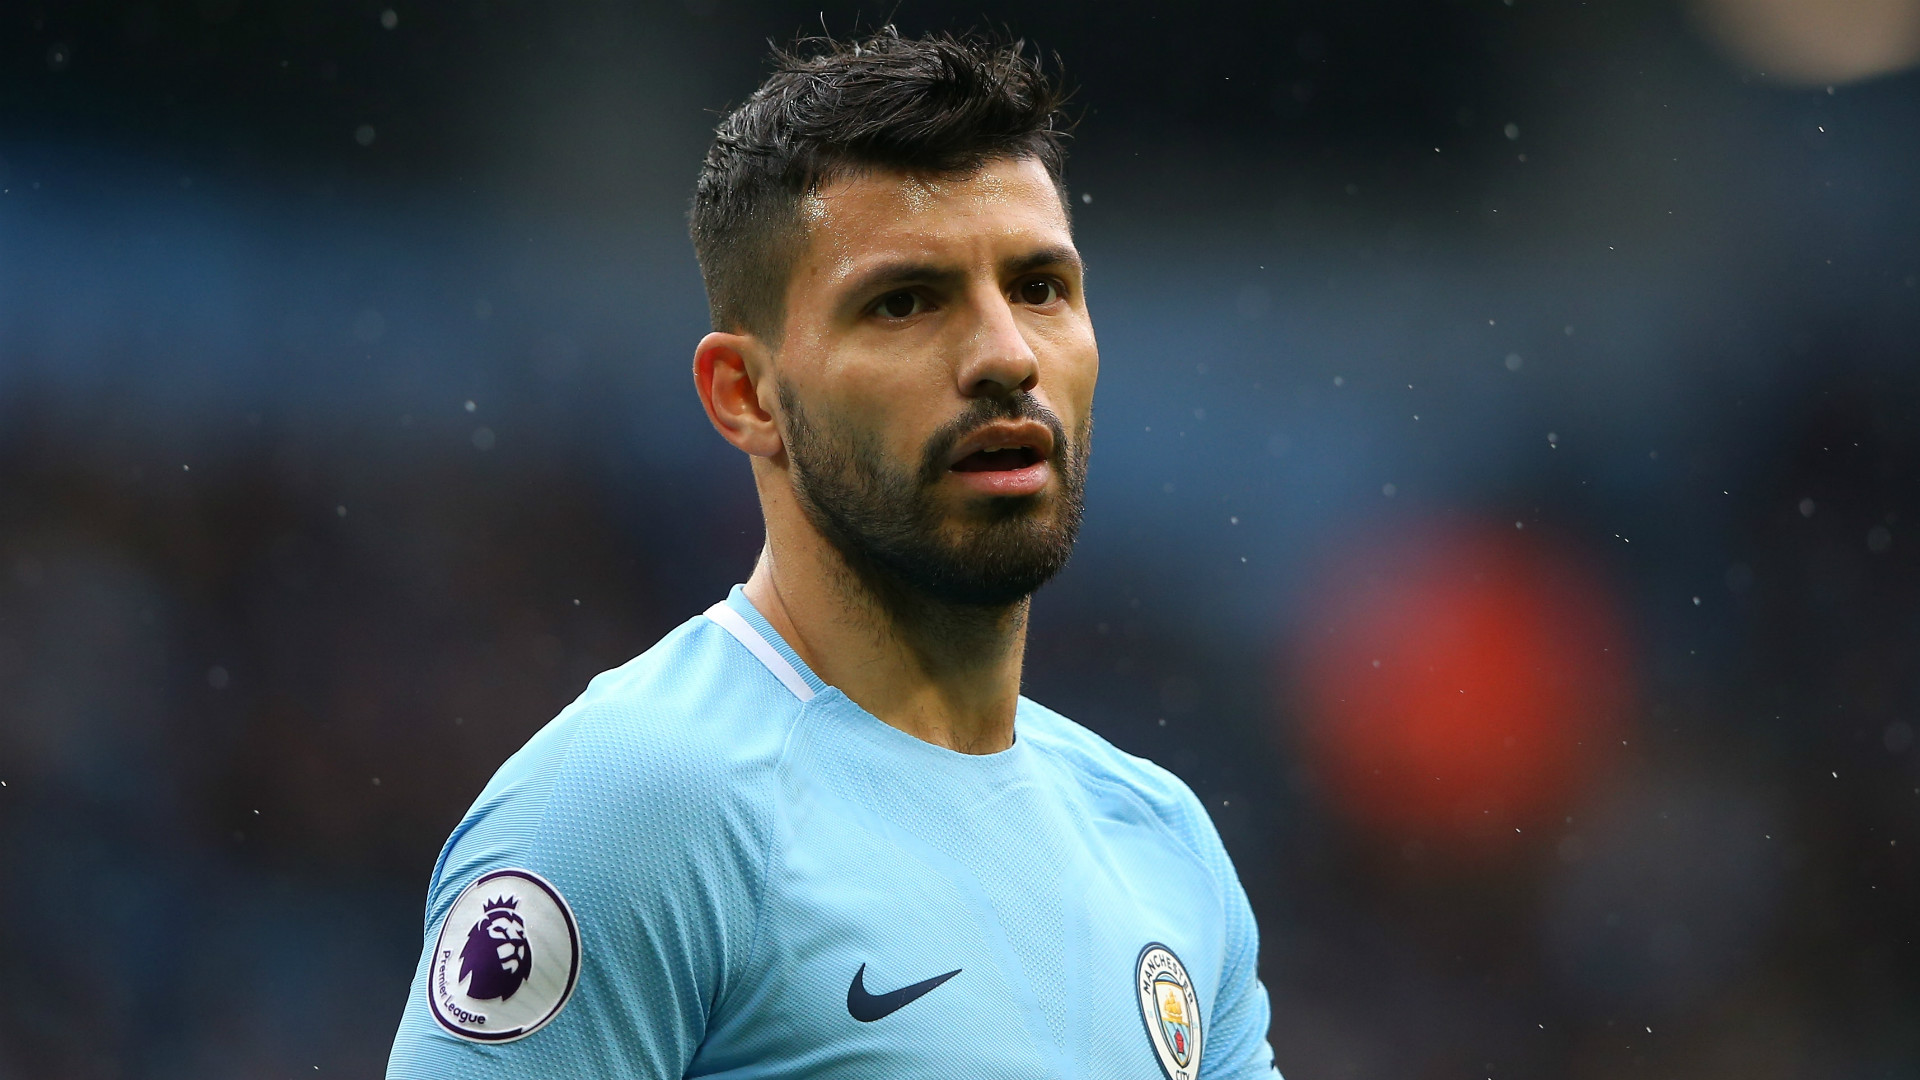 Manchester City vs Arsenal: TV channel, stream, kick-off time, odds & match preview